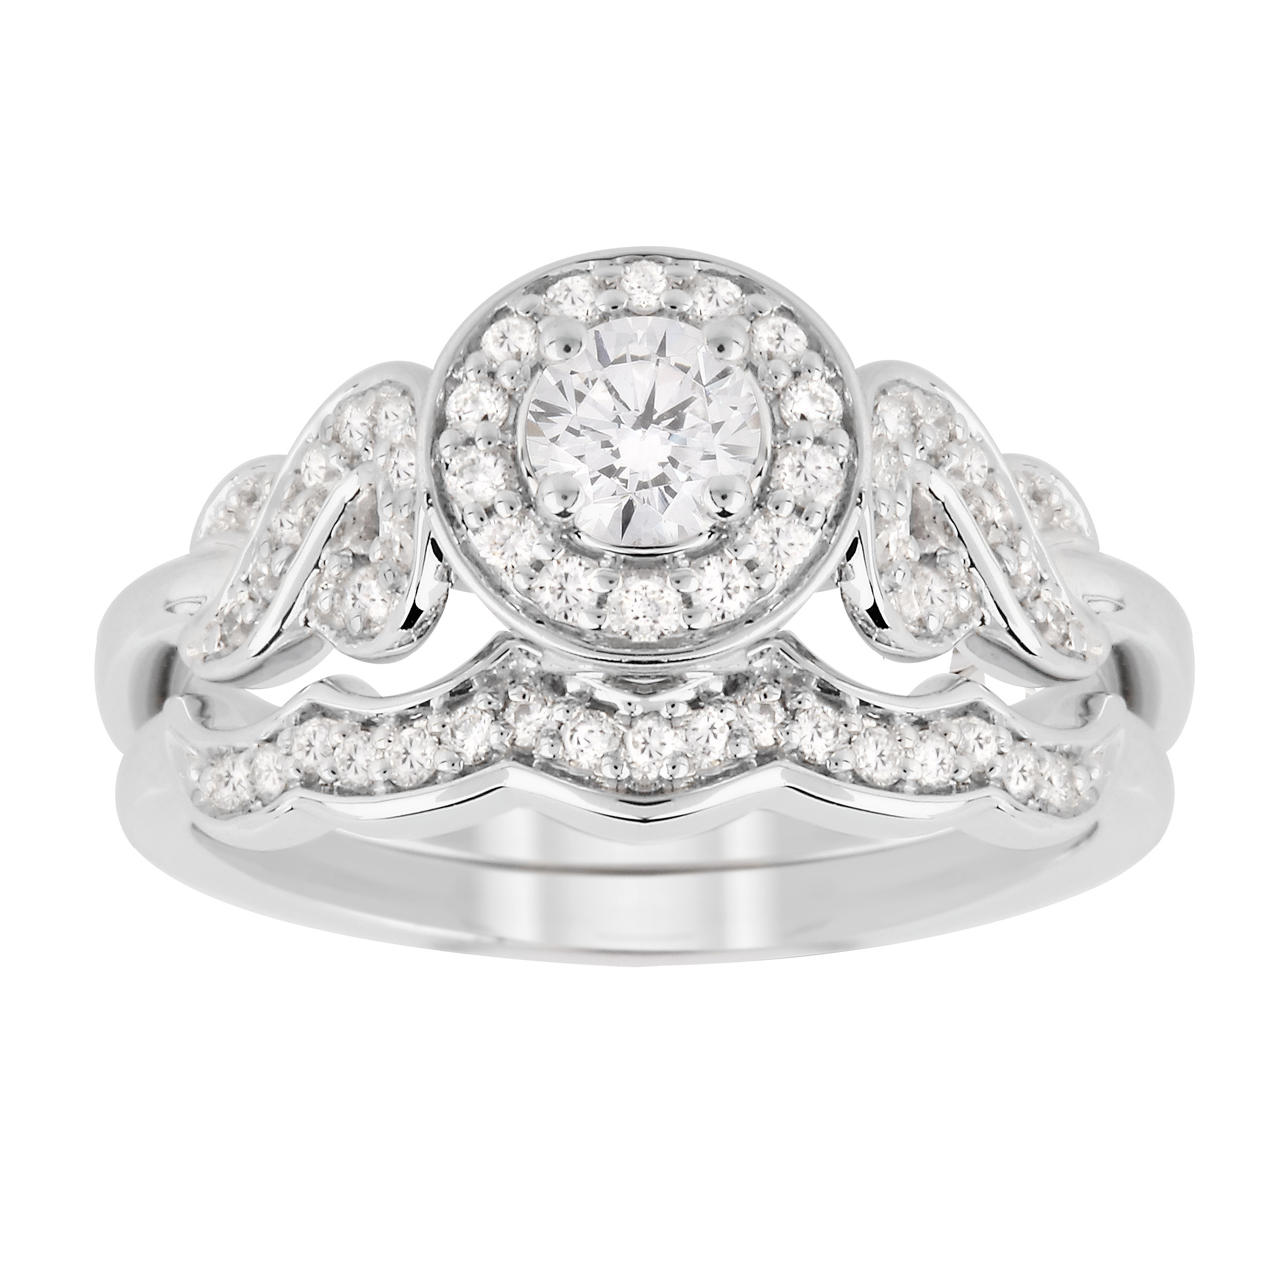 Jenny Packham Brilliant Cut 0.56 Carat Total Weight Diamond Bridal Set Ring in 18 Carat White Gold